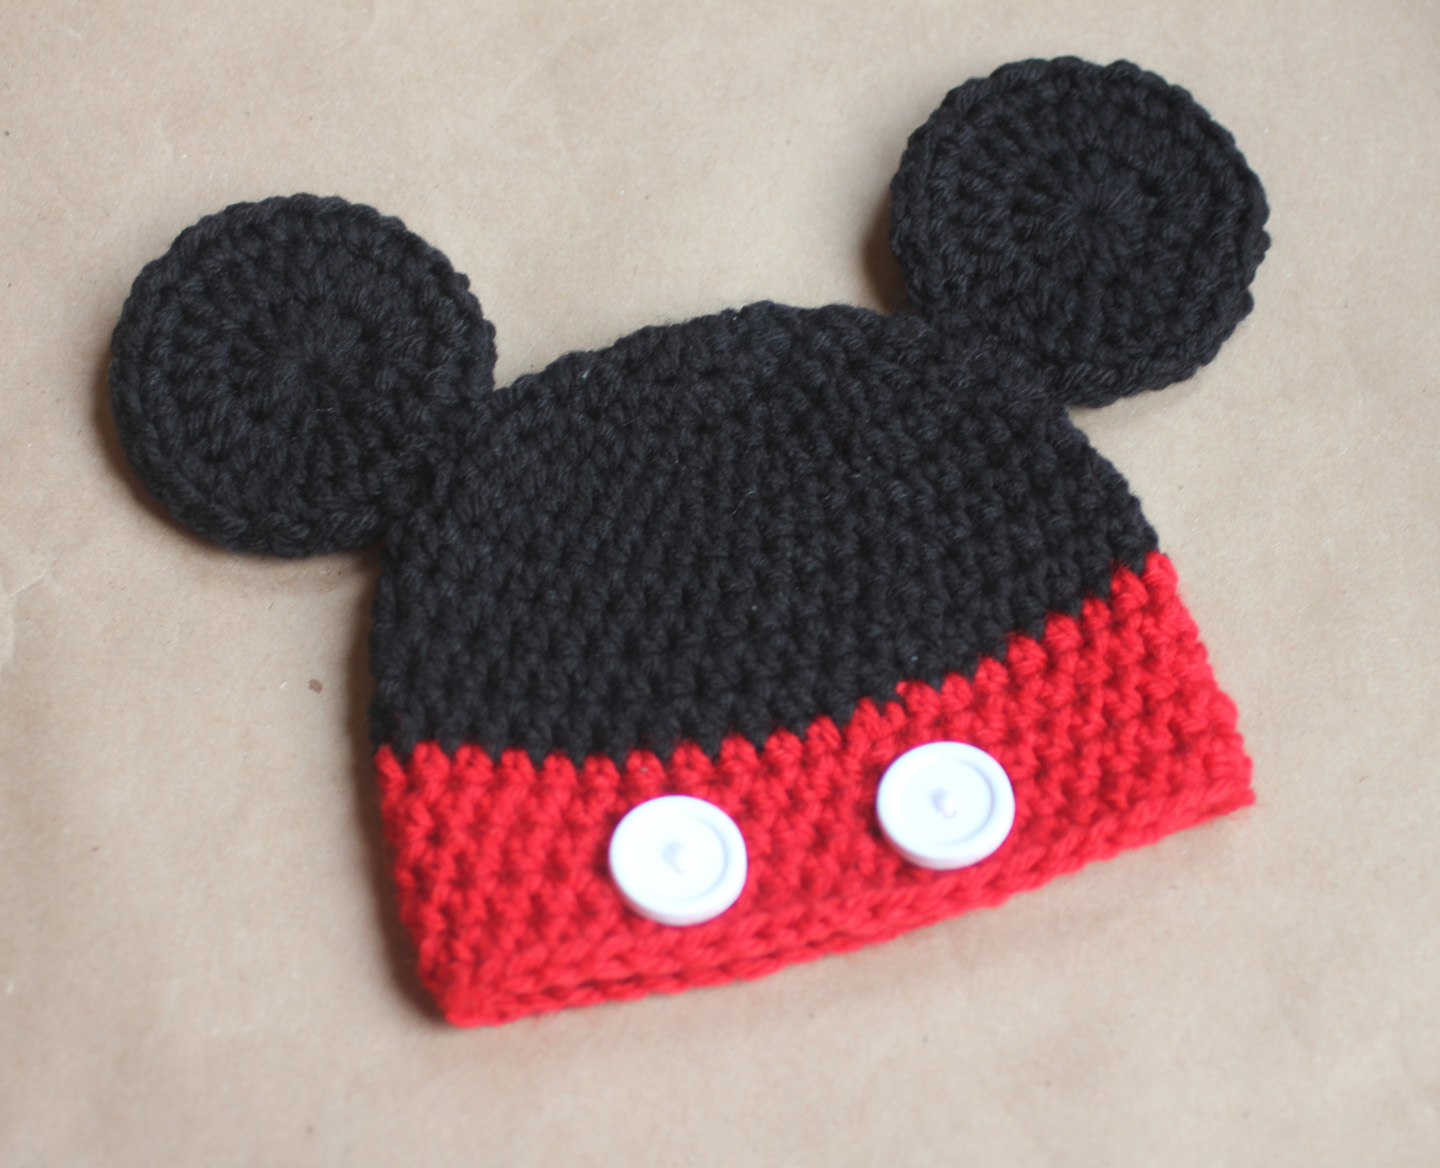 Catalog: FREE PATTERNS / Cartoons: Mickey Mouse I Product type: Free Pattern Manufactured by: HaftiX - patterns Designed by: Landrynka Product No: GSH